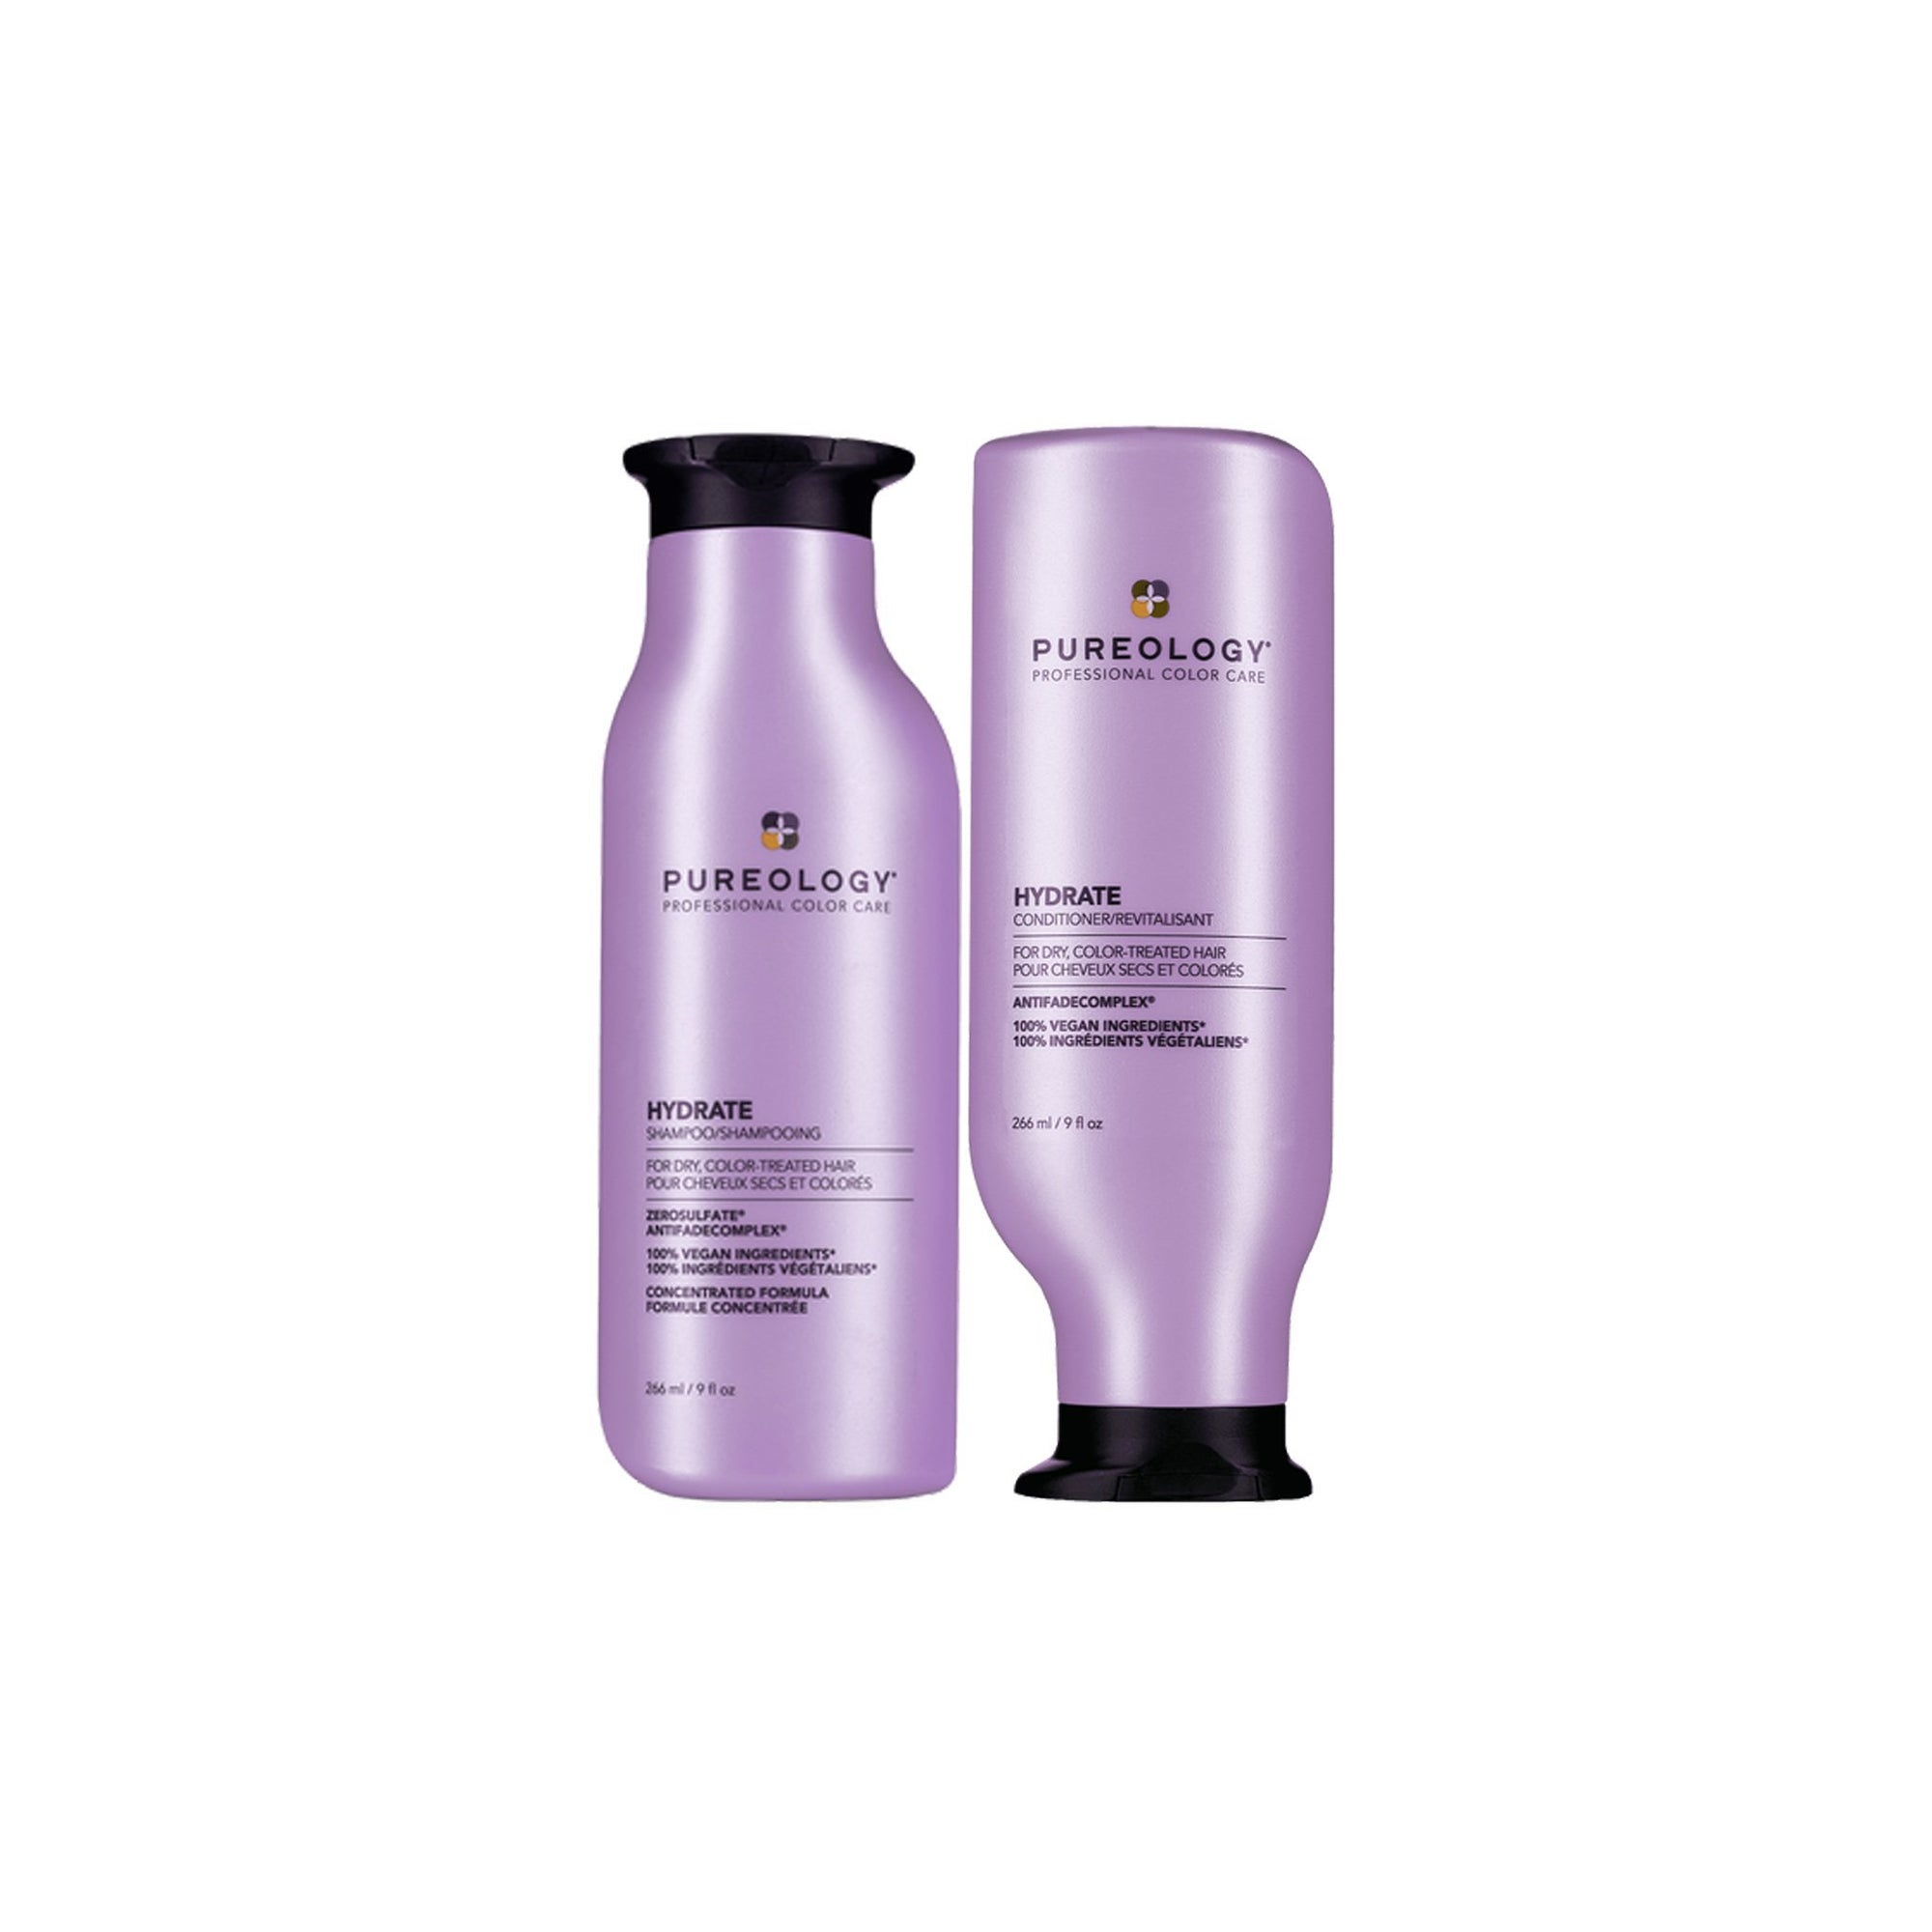 Pureology Hydrate Bundle